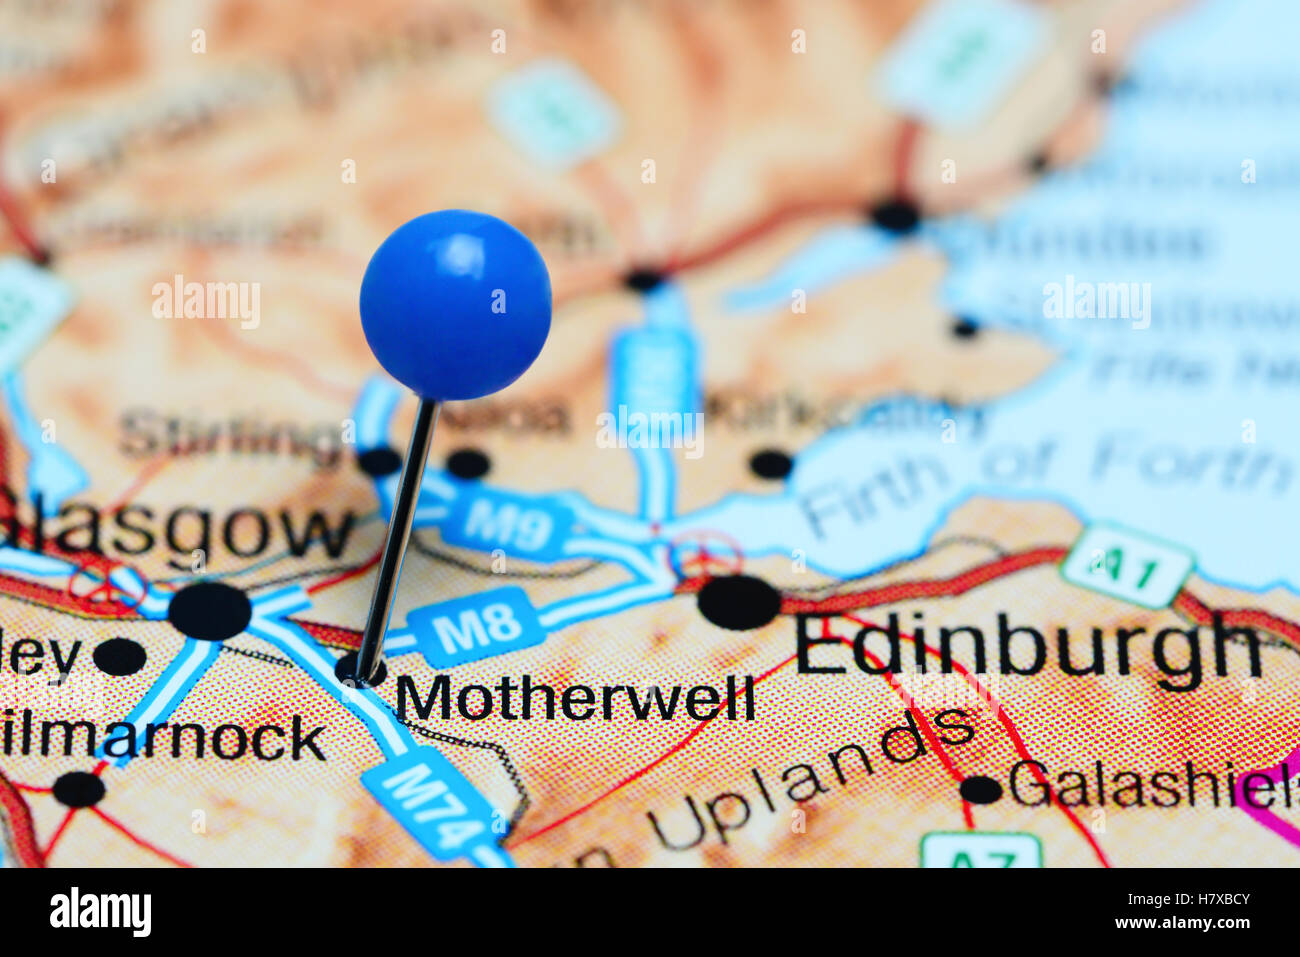 Motherwell pinned on a map of Scotland Stock Photo